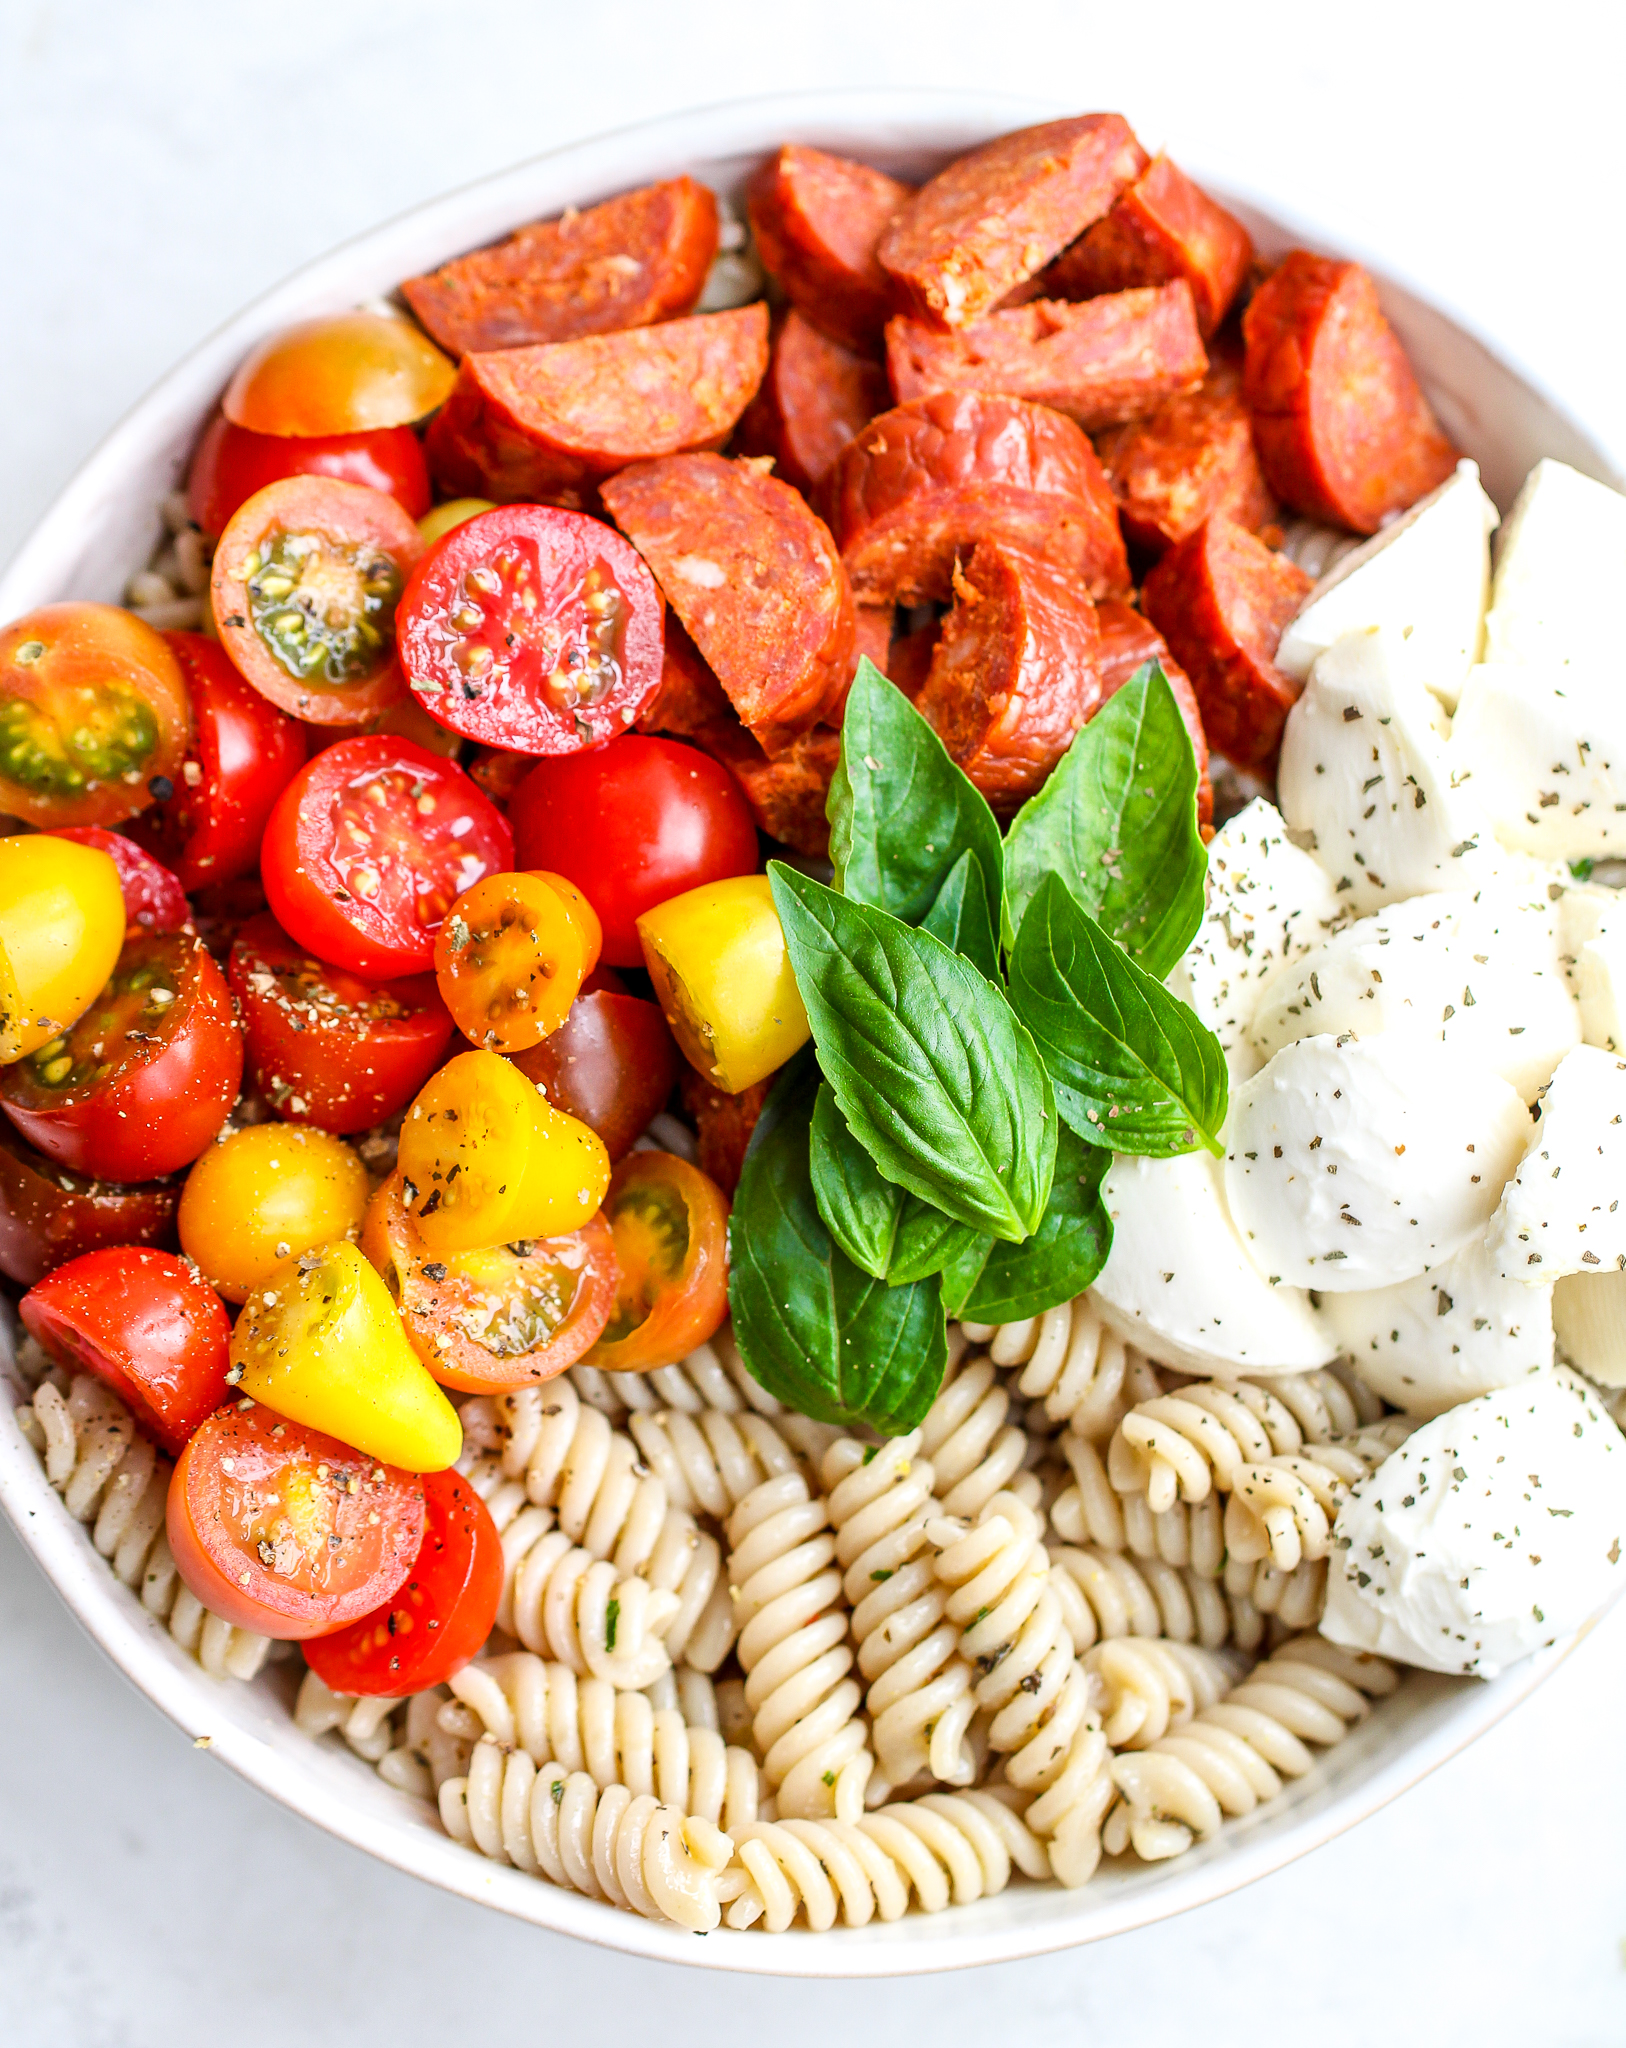 Ingredients for Italian pasta salad arranged in a white serving bowl - cooked gluten free pasta,